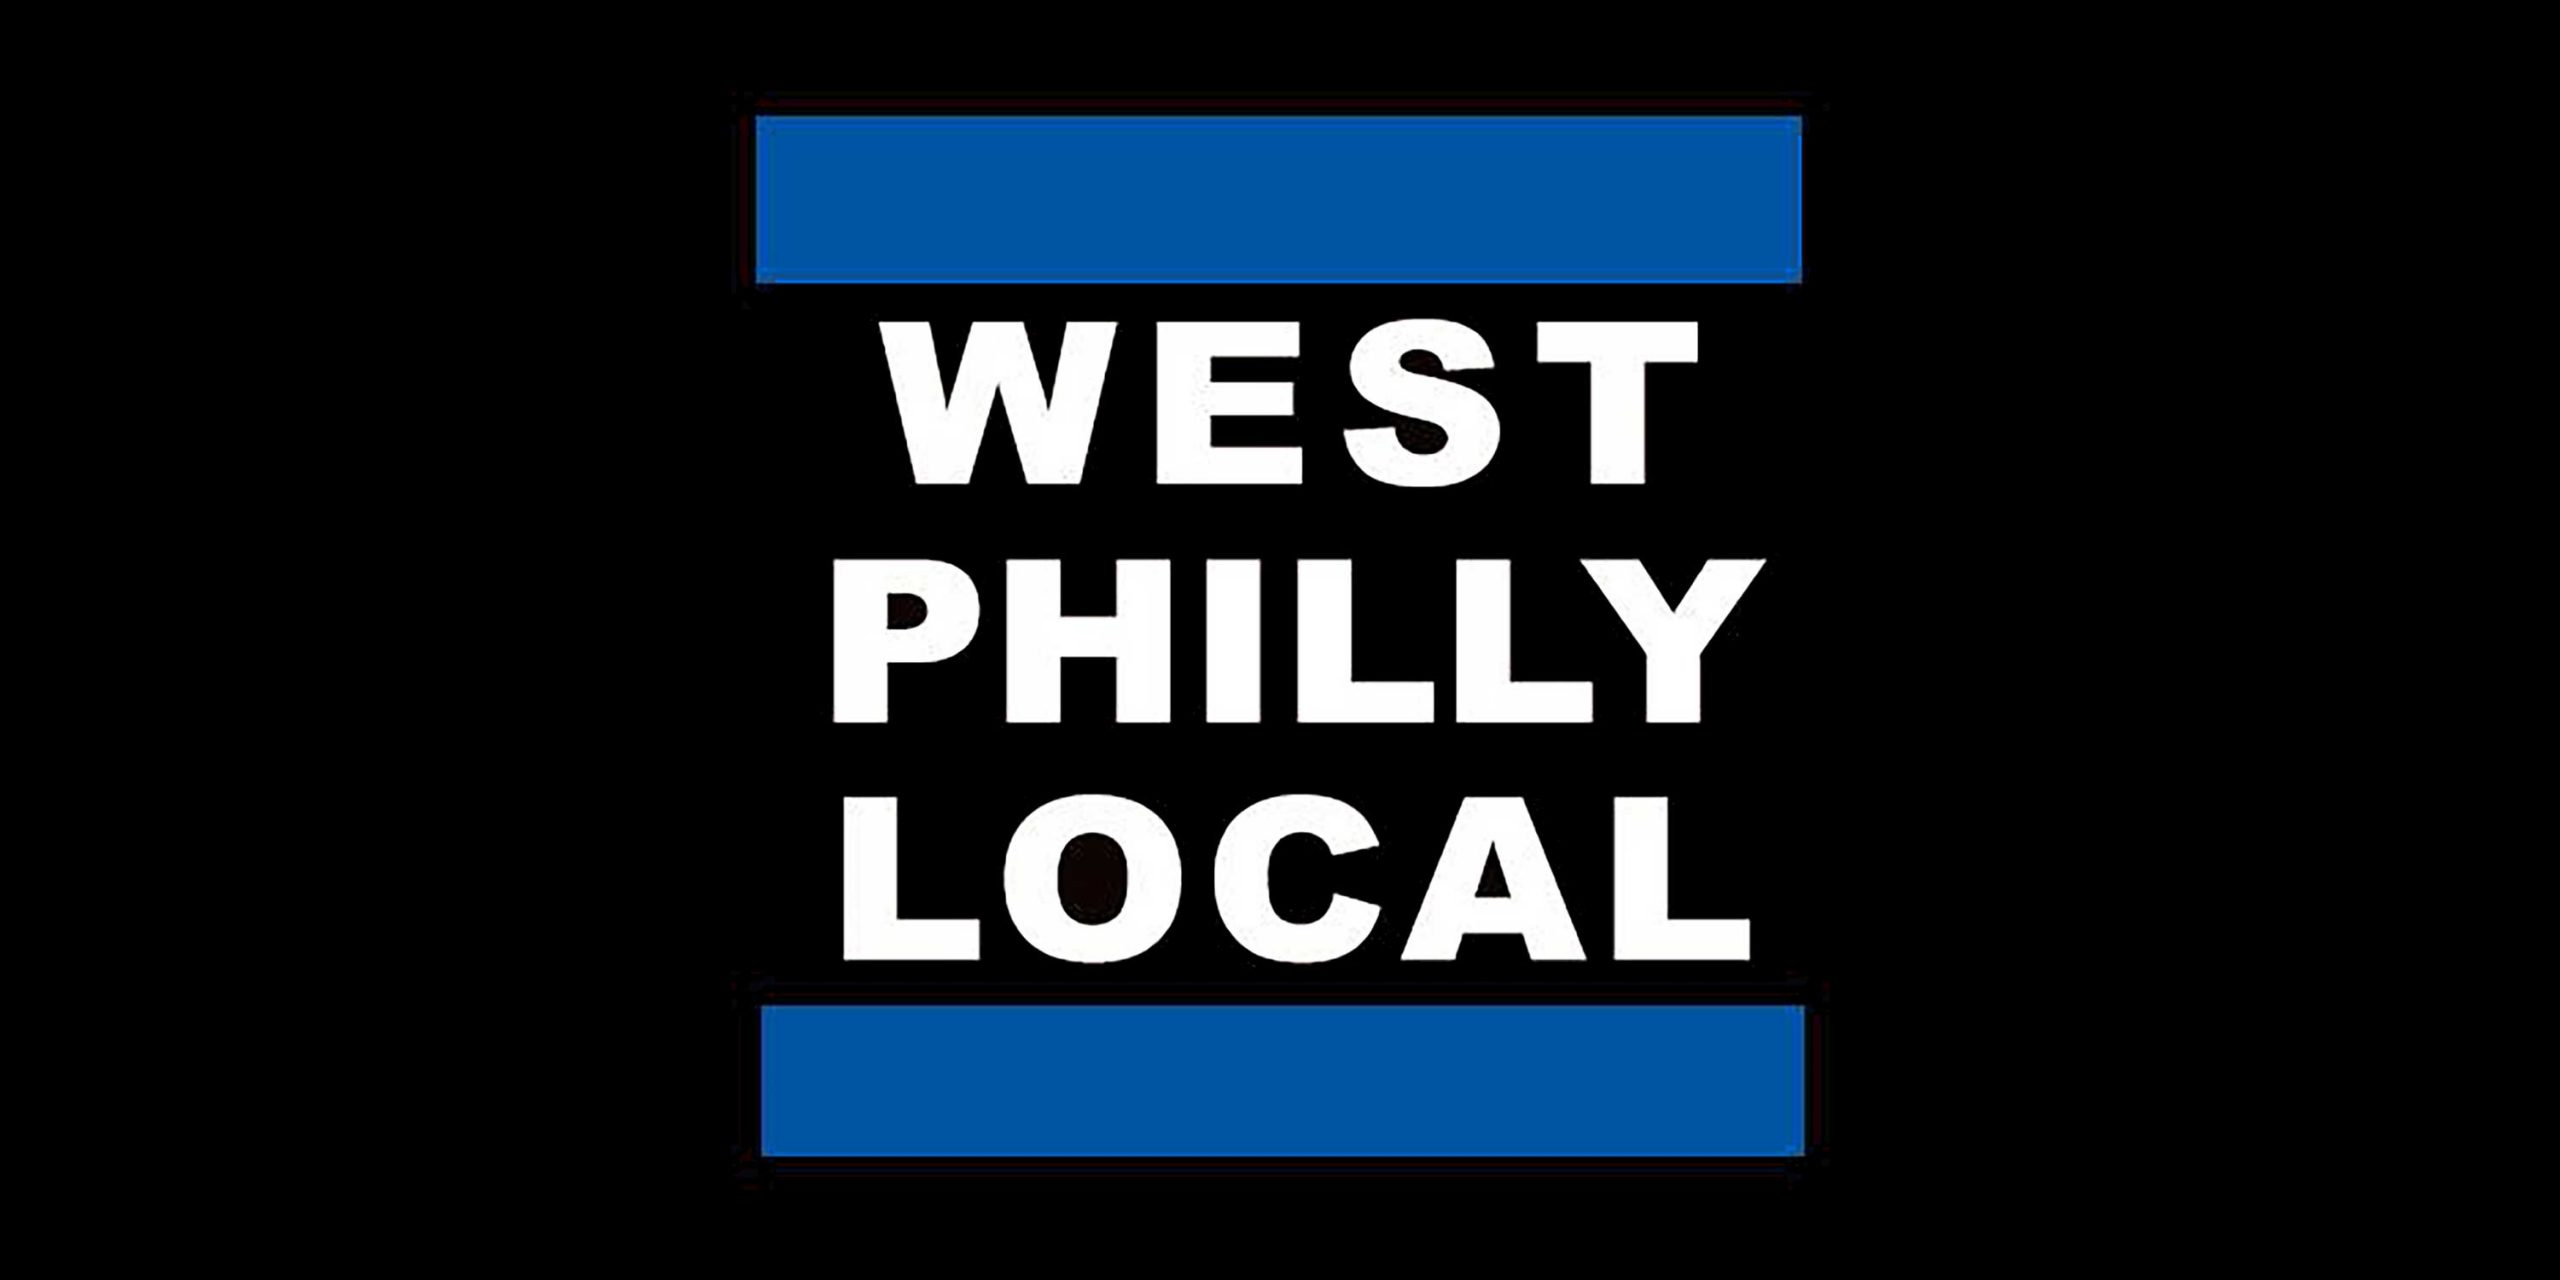 West Philly Local masthead